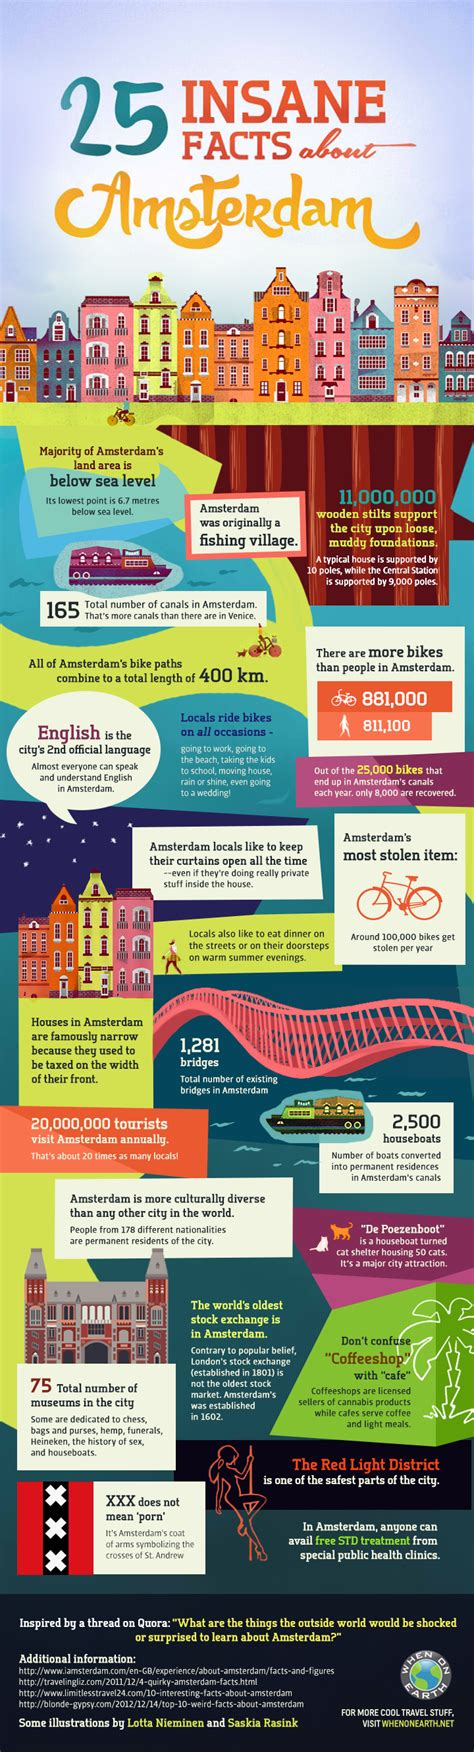 25 Insane Facts About Amsterdam #infographic | Amsterdam ...